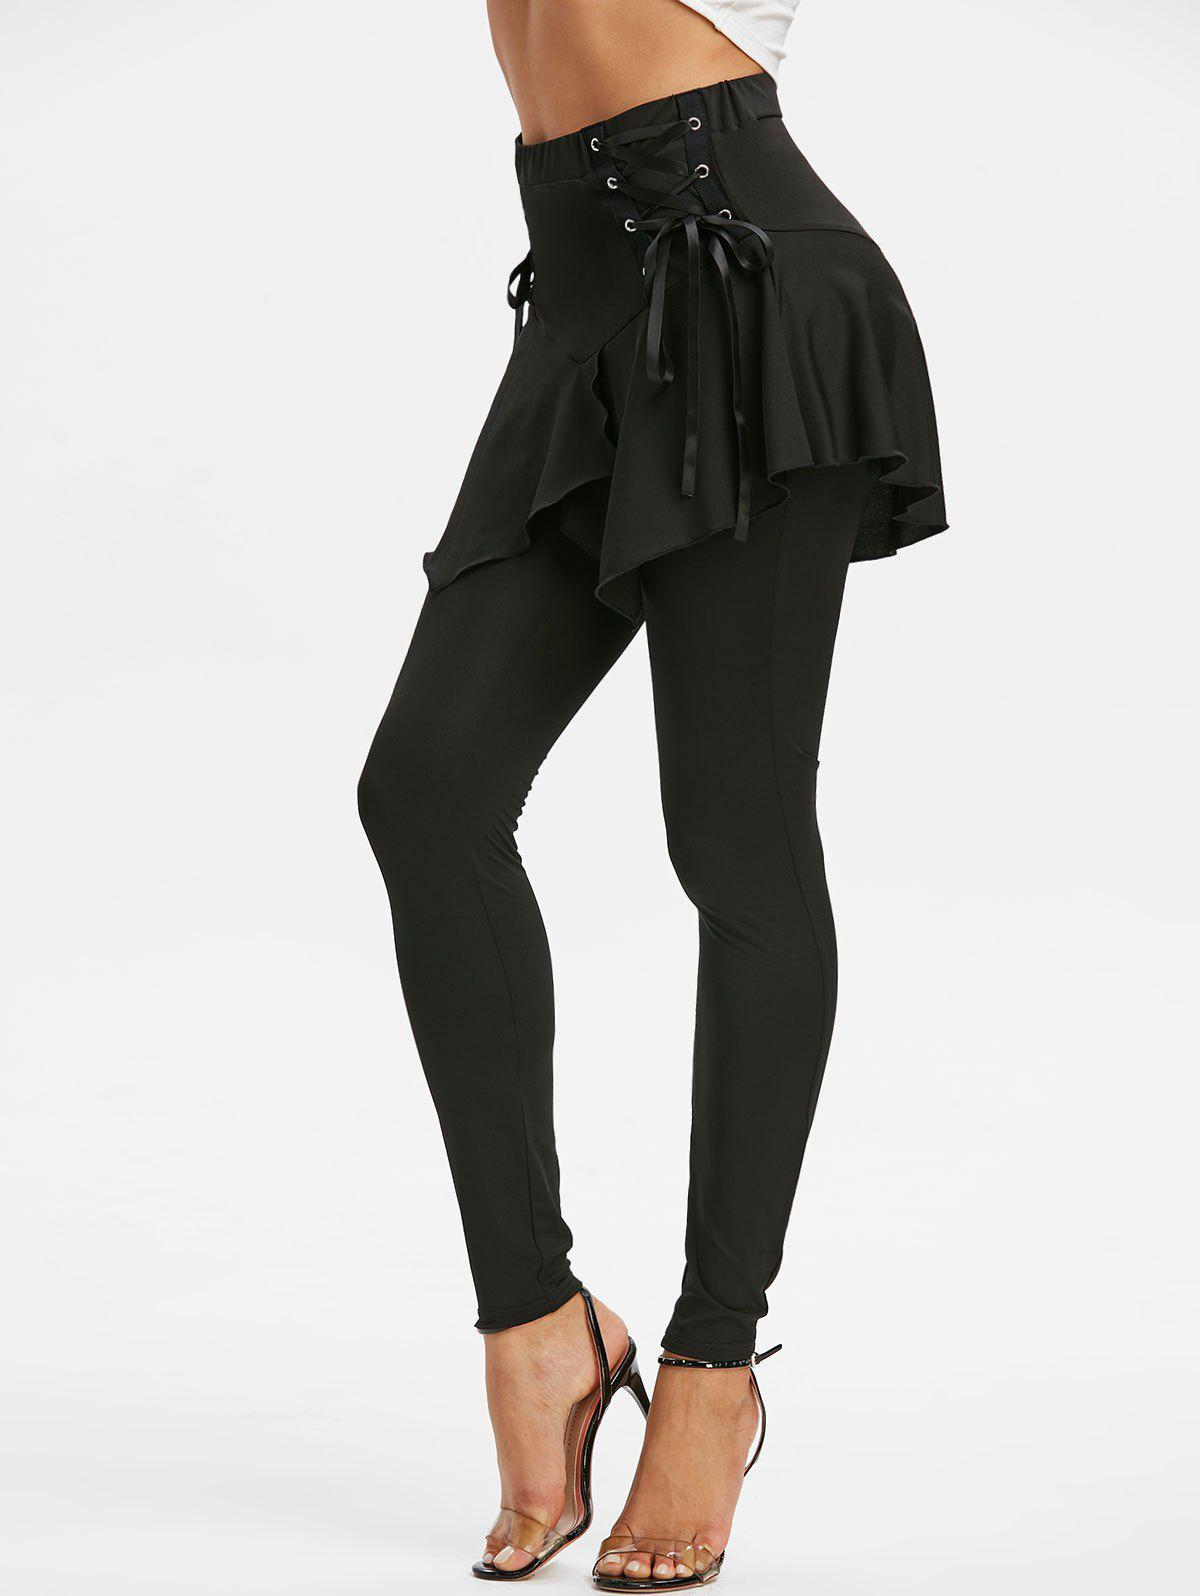 Unique Lace Up Elastic Waist Asymmetrical Skirted Leggings